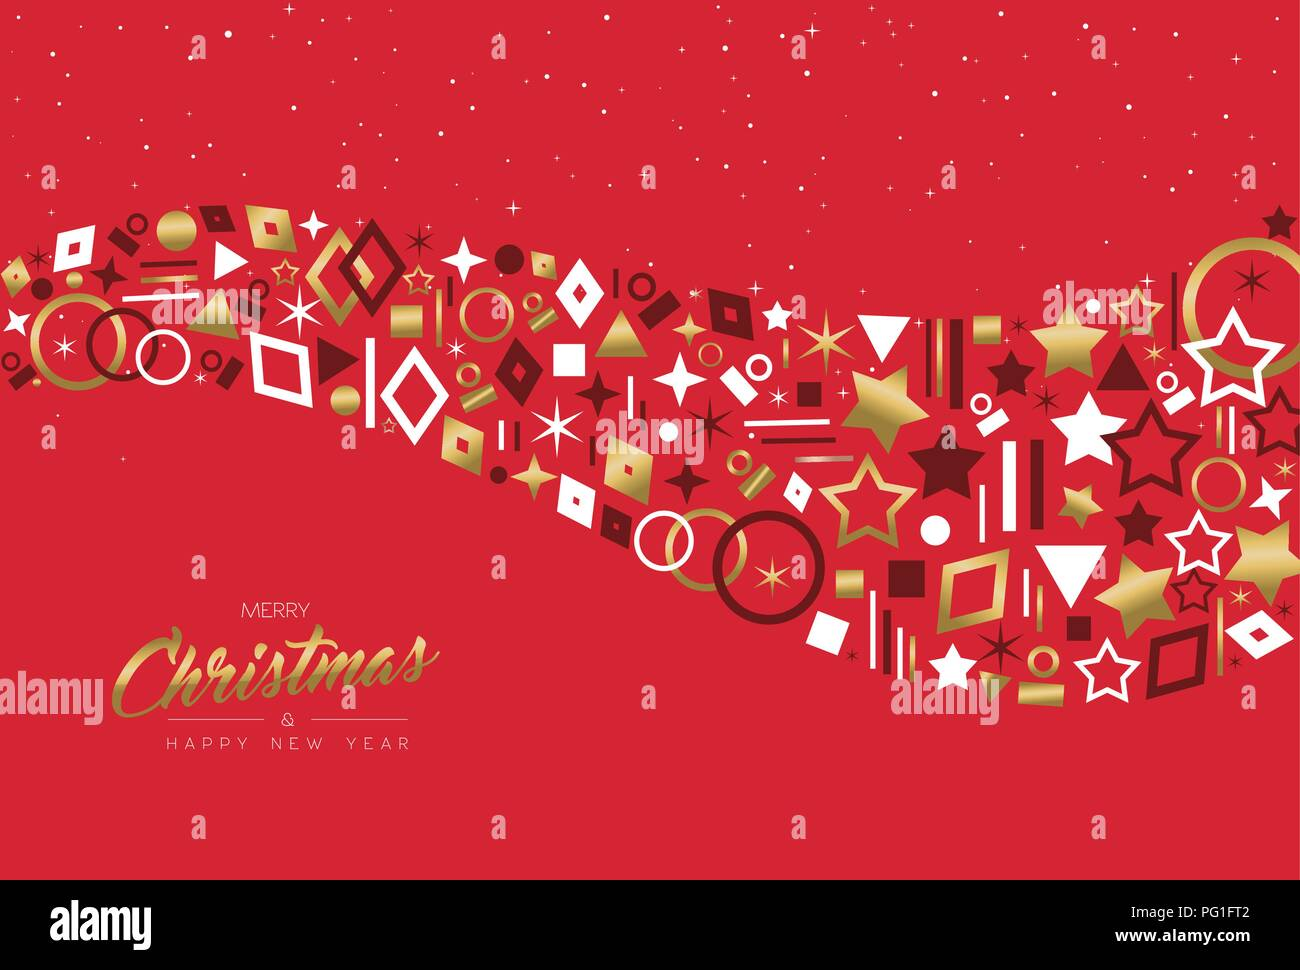 Merry Christmas And Happy New Year Greeting Card Design With Elegant